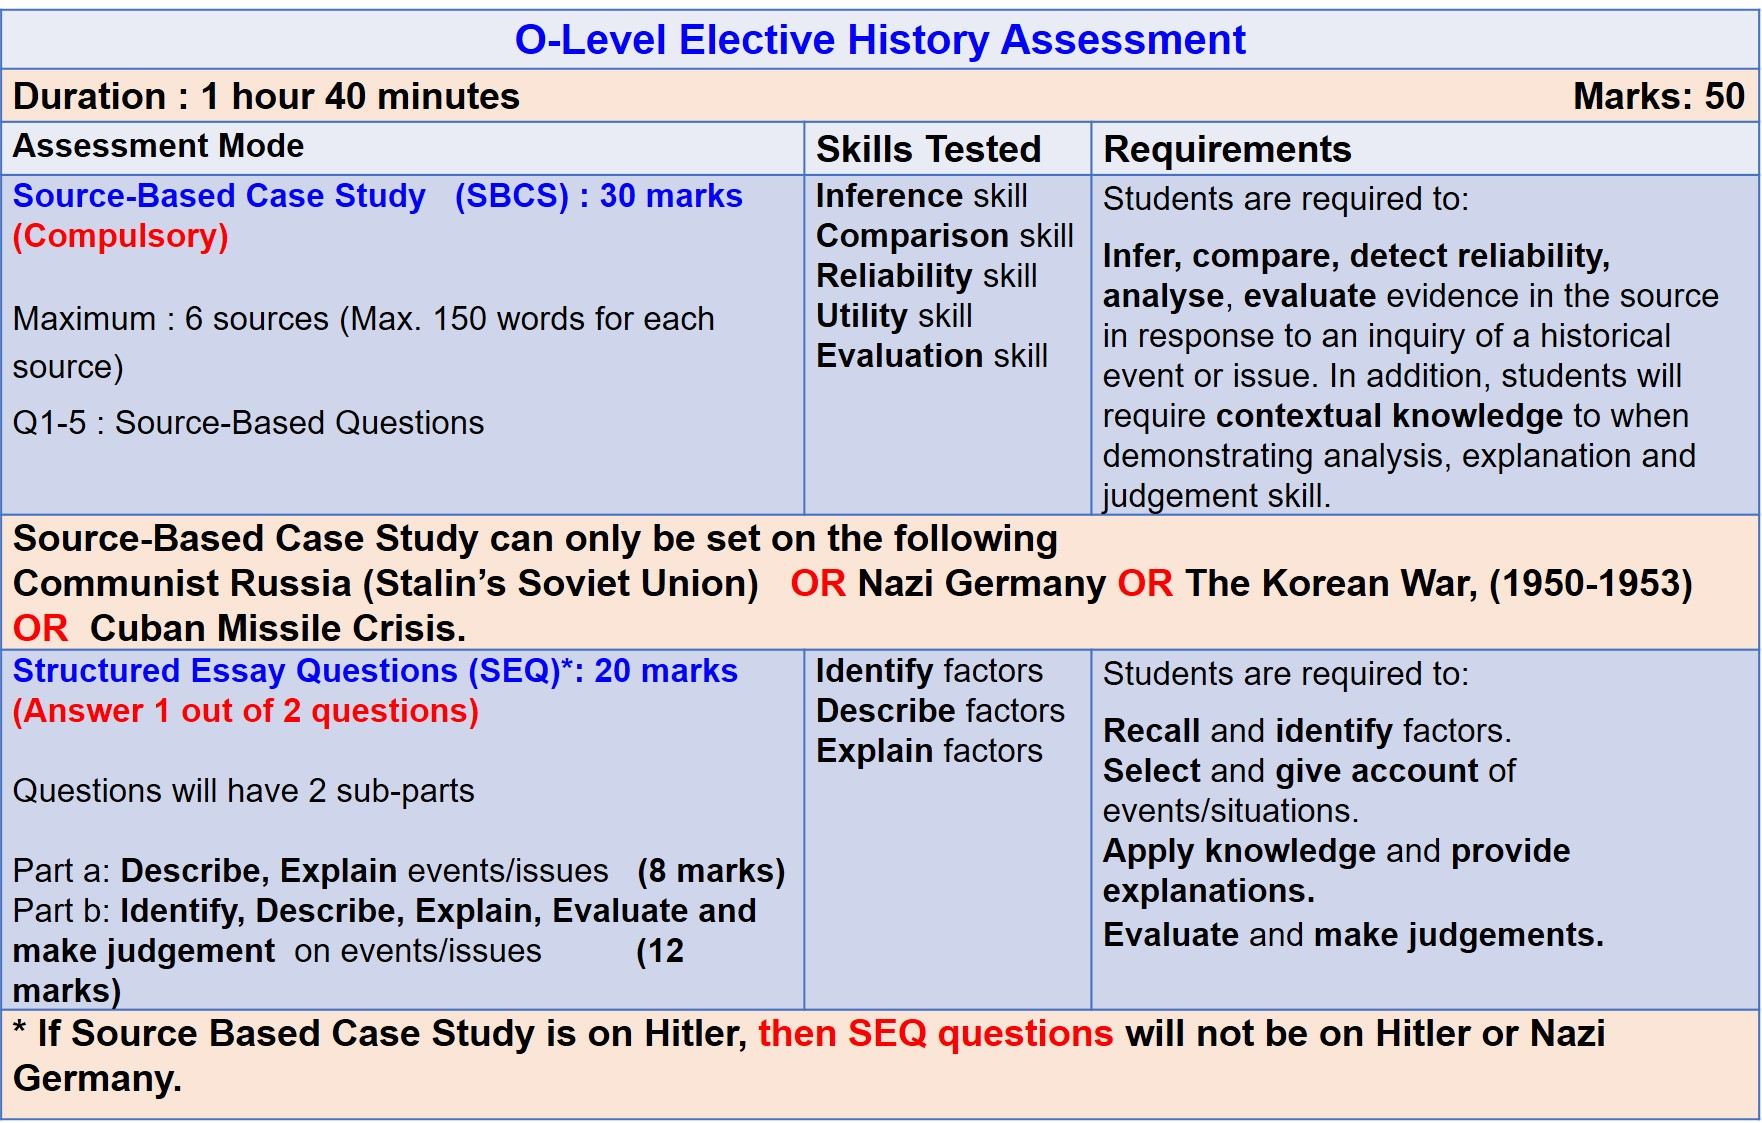 o-level history assessment